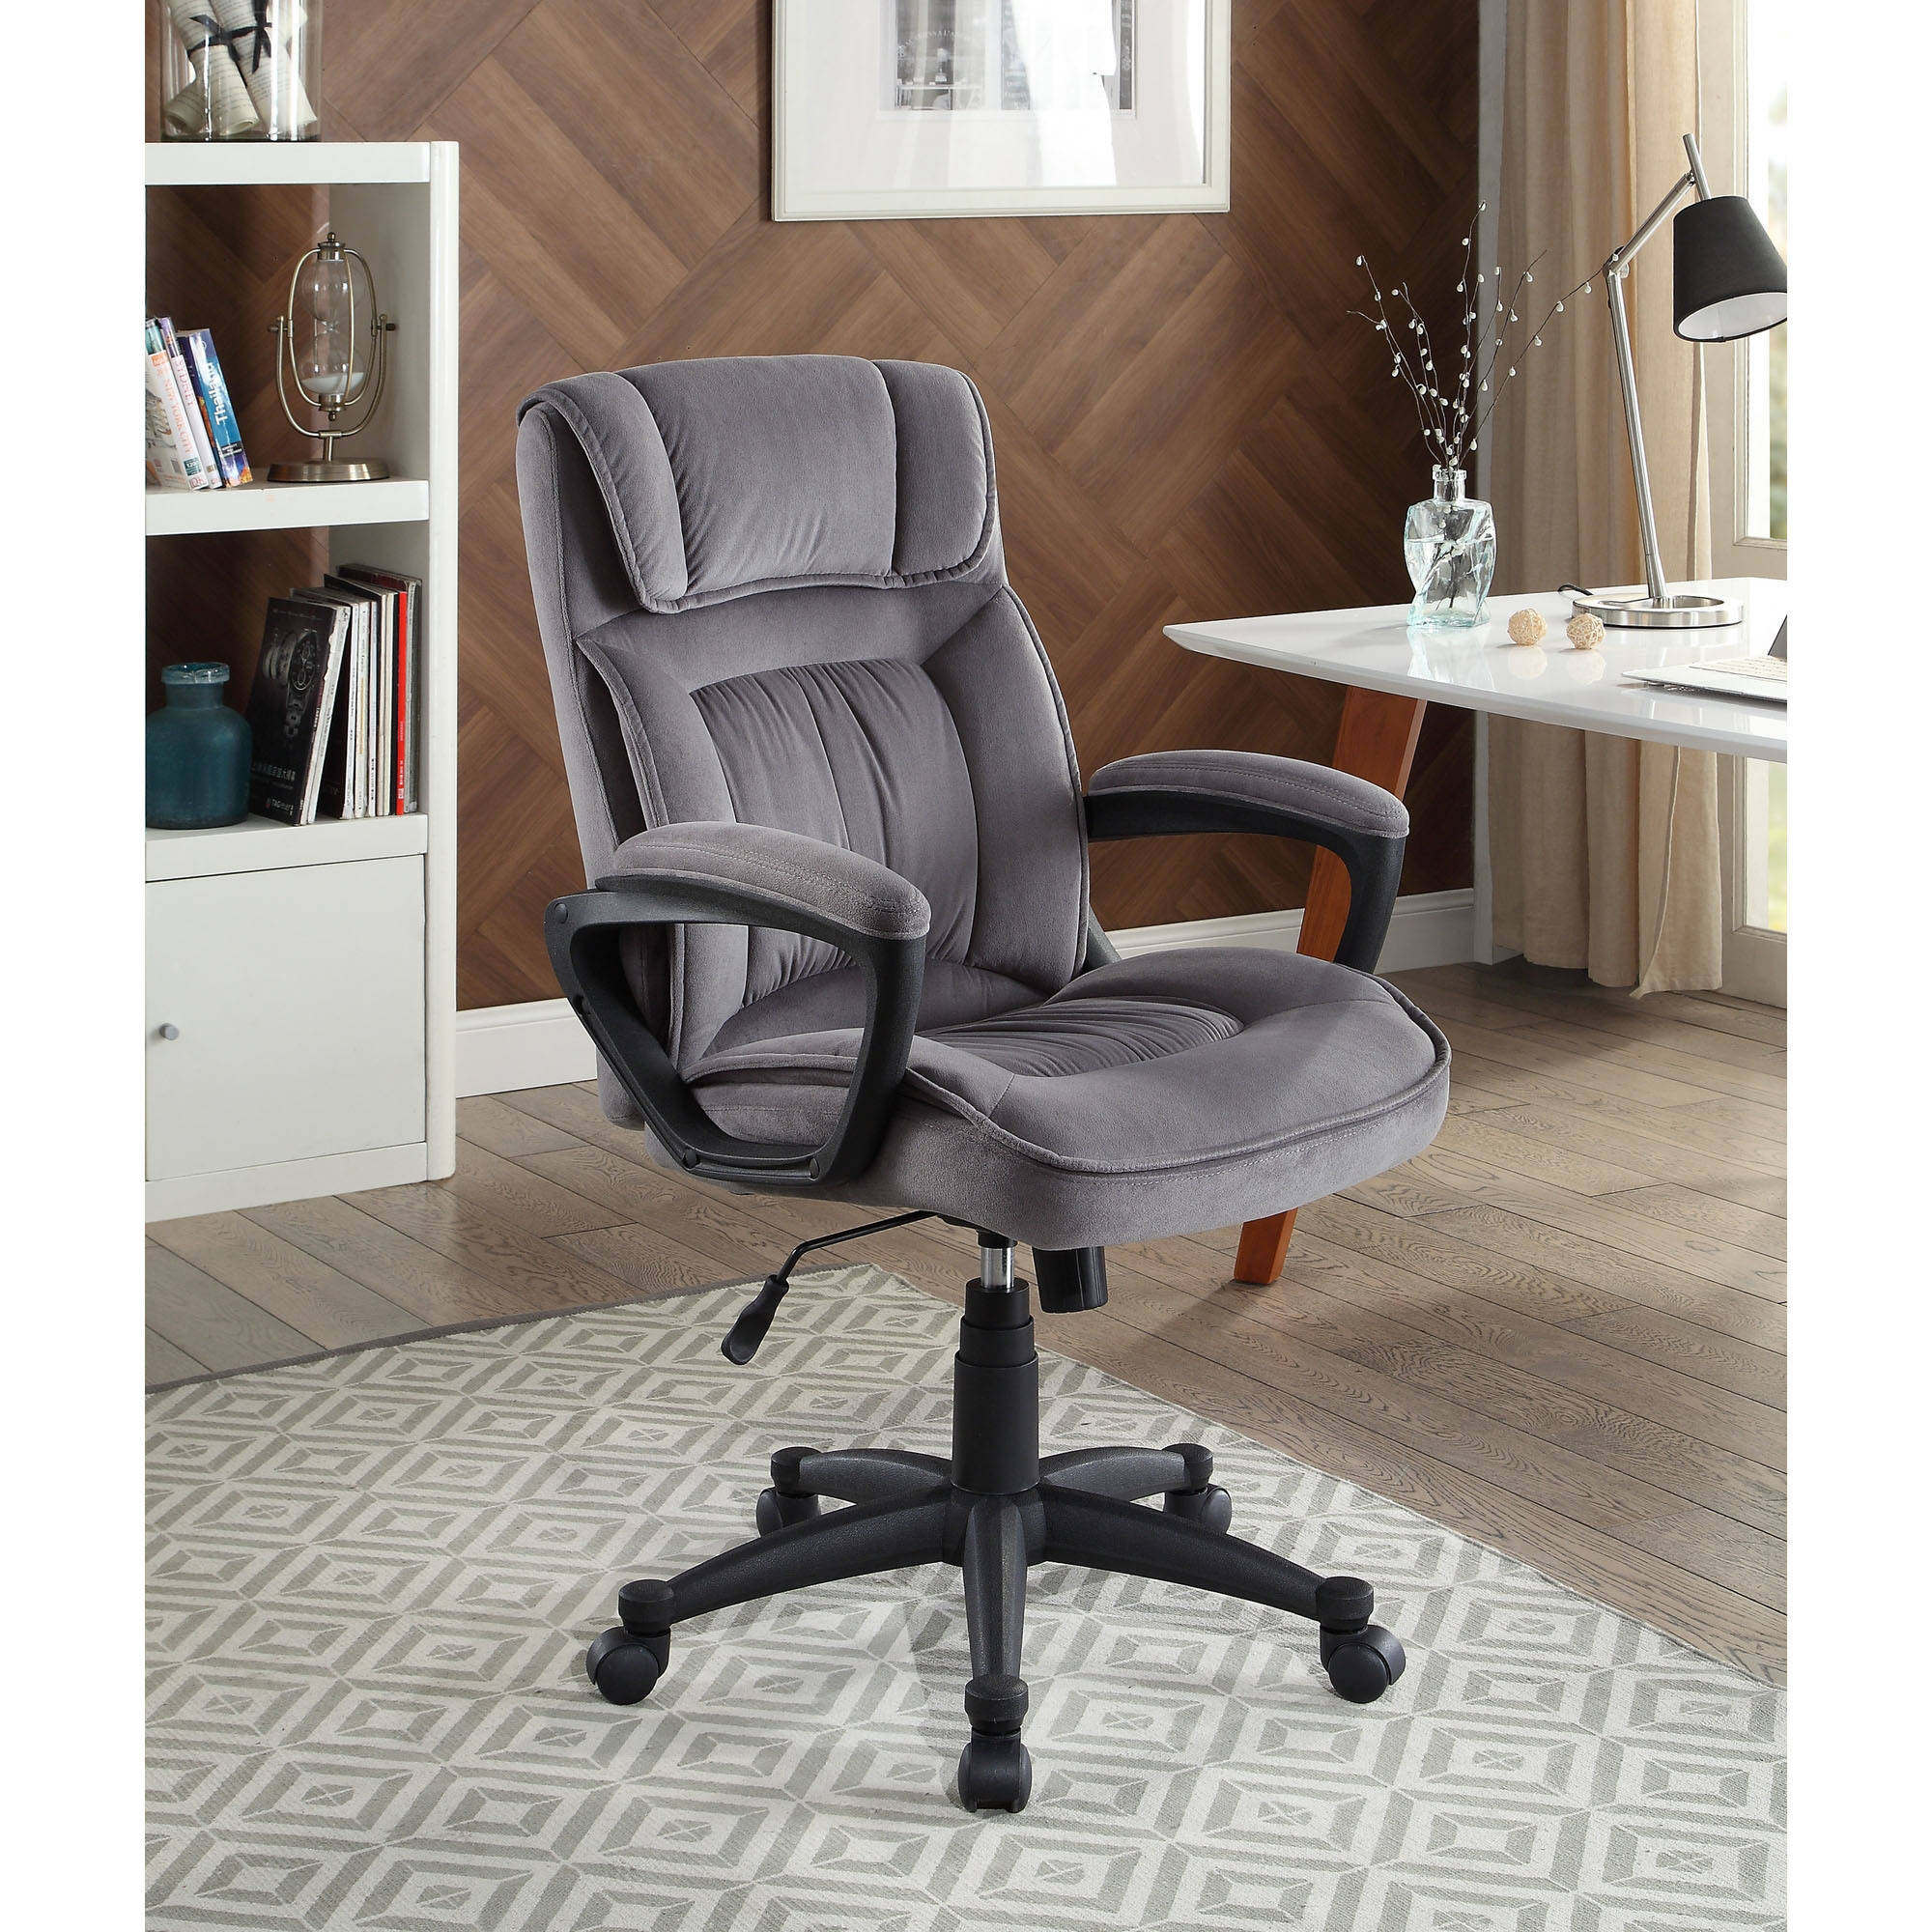 Microfiber Office Chair 3 Lovely Stem Caster Office Chair Insured By Ross